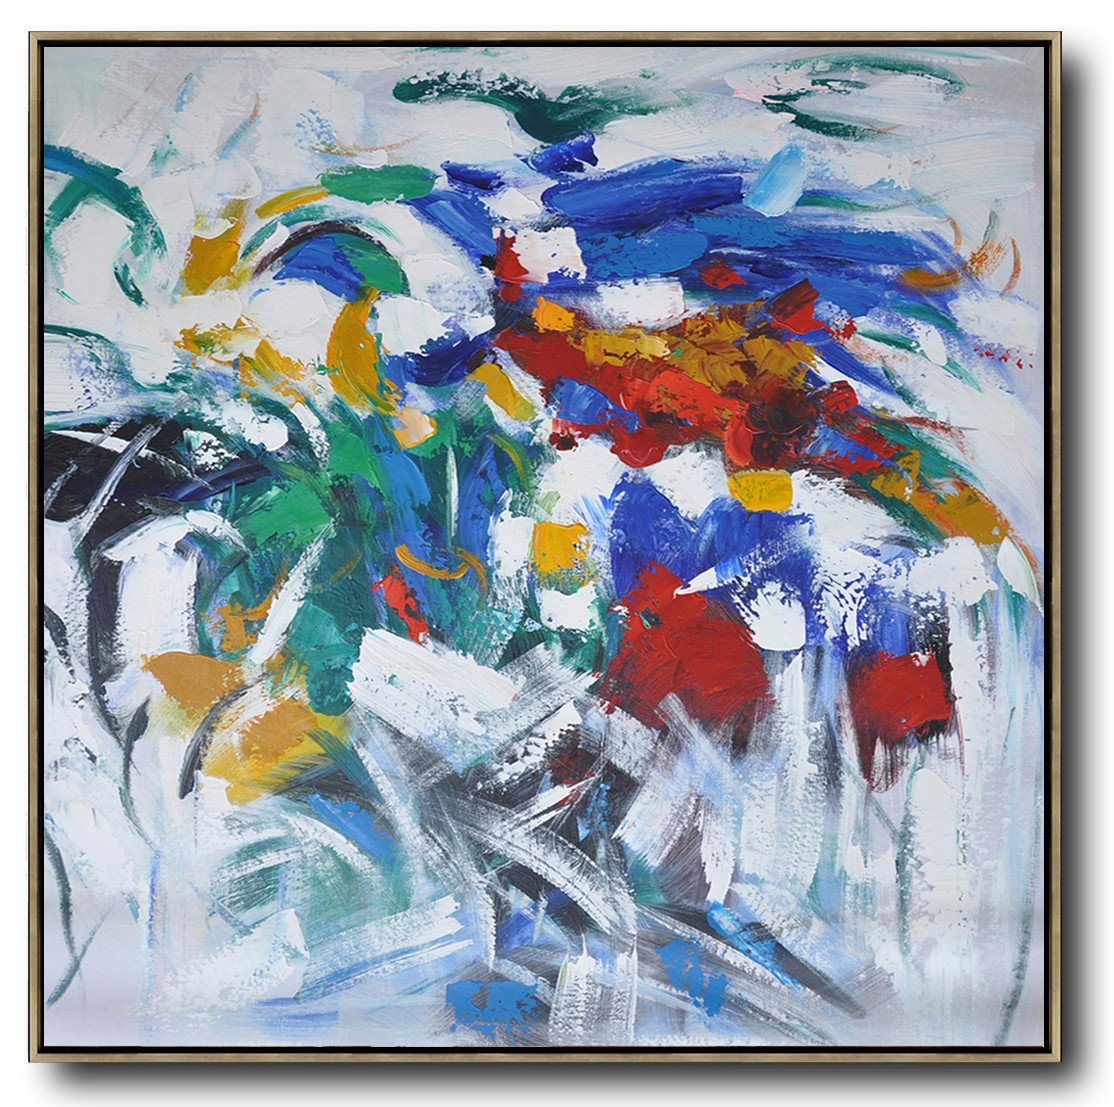 Extra Large Painting,Oversized Contemporary Art,Abstract Paintings On Sale,Blue,Red,Orange,White.etc